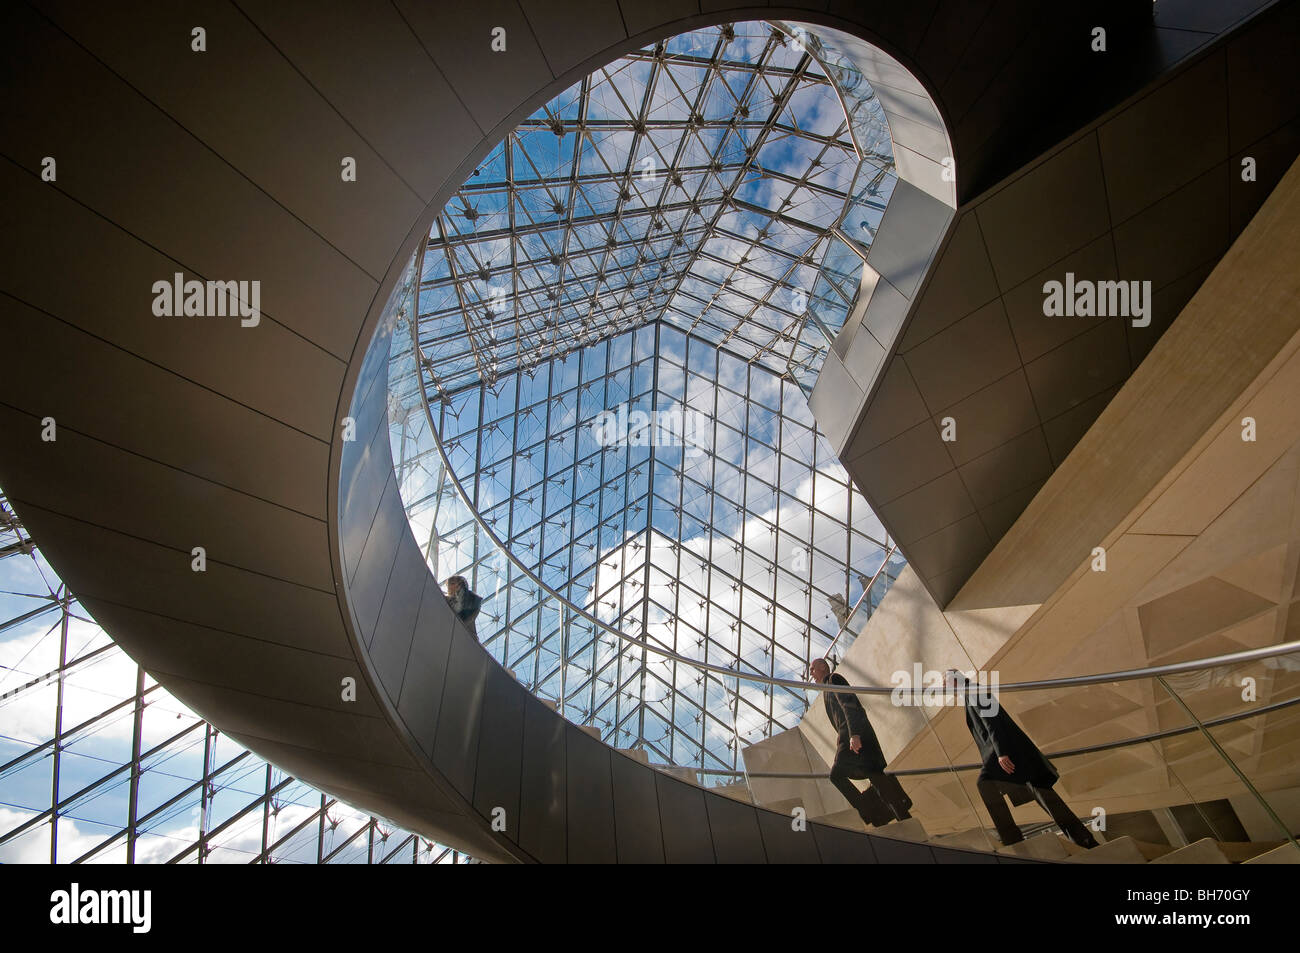 Pyramide du Louvre France paires Escaliers Photo Stock